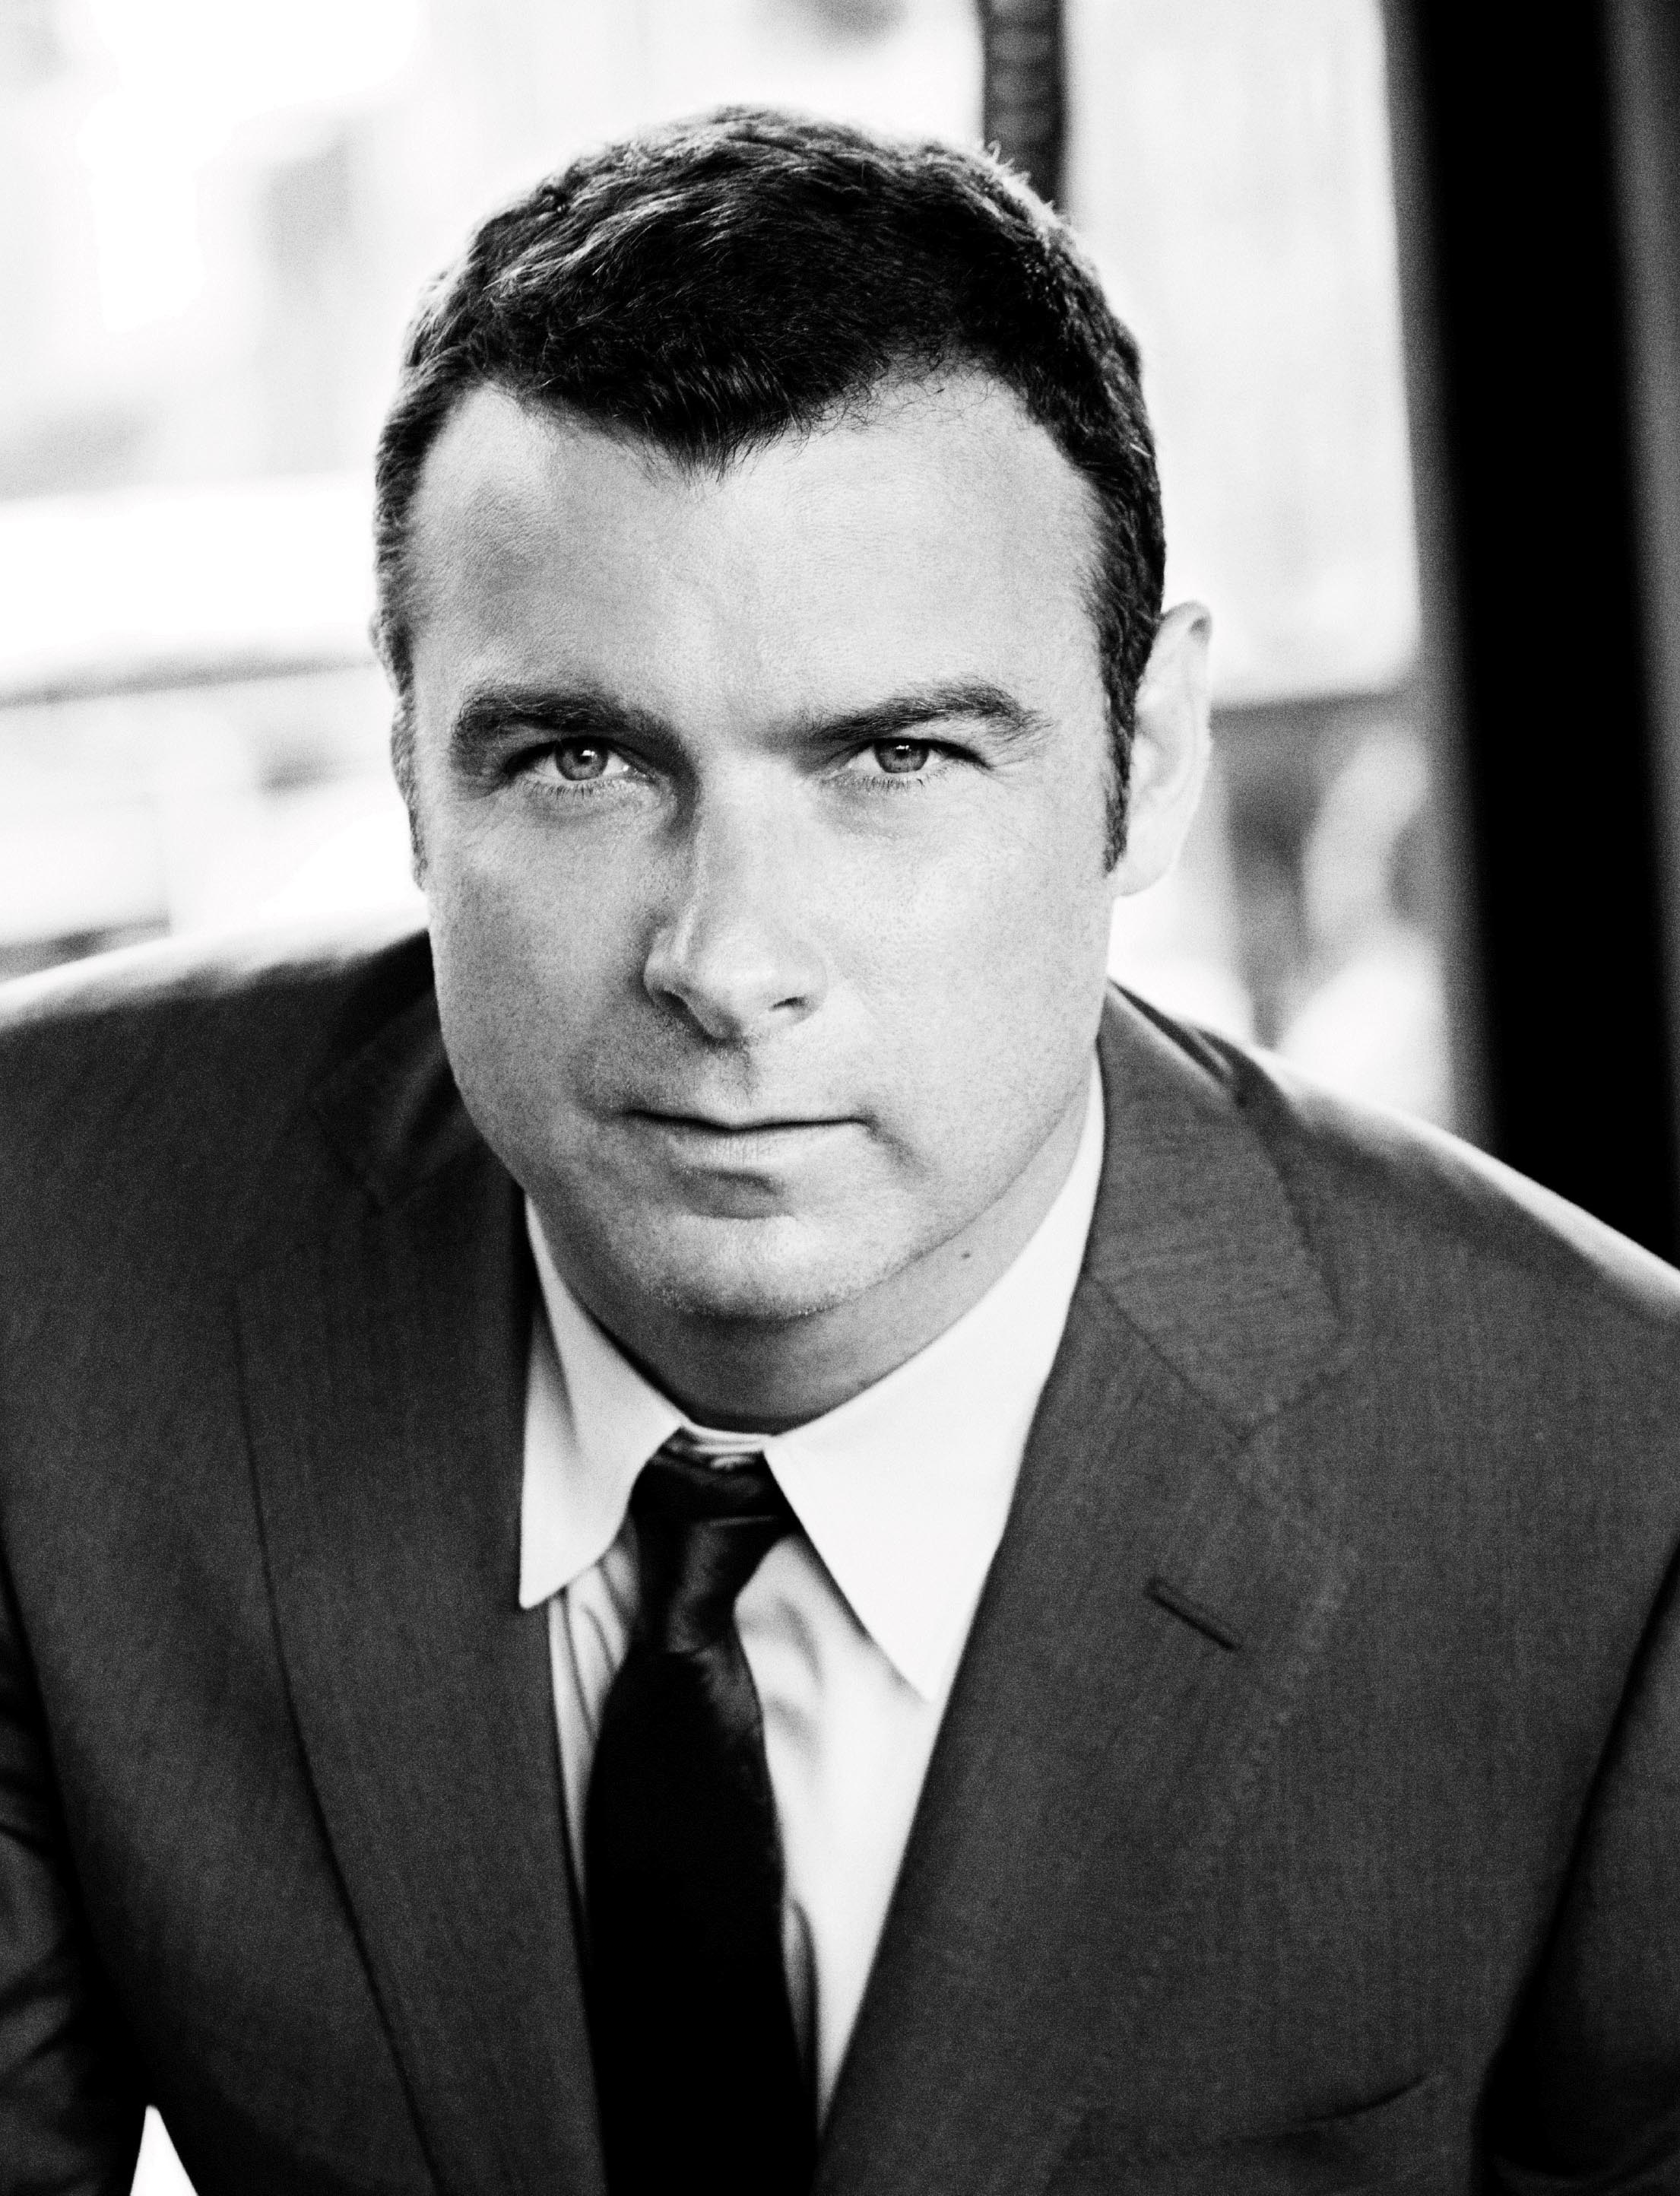 Golden Globe Nominee and Tony Award Winner Liev Schreiber ...